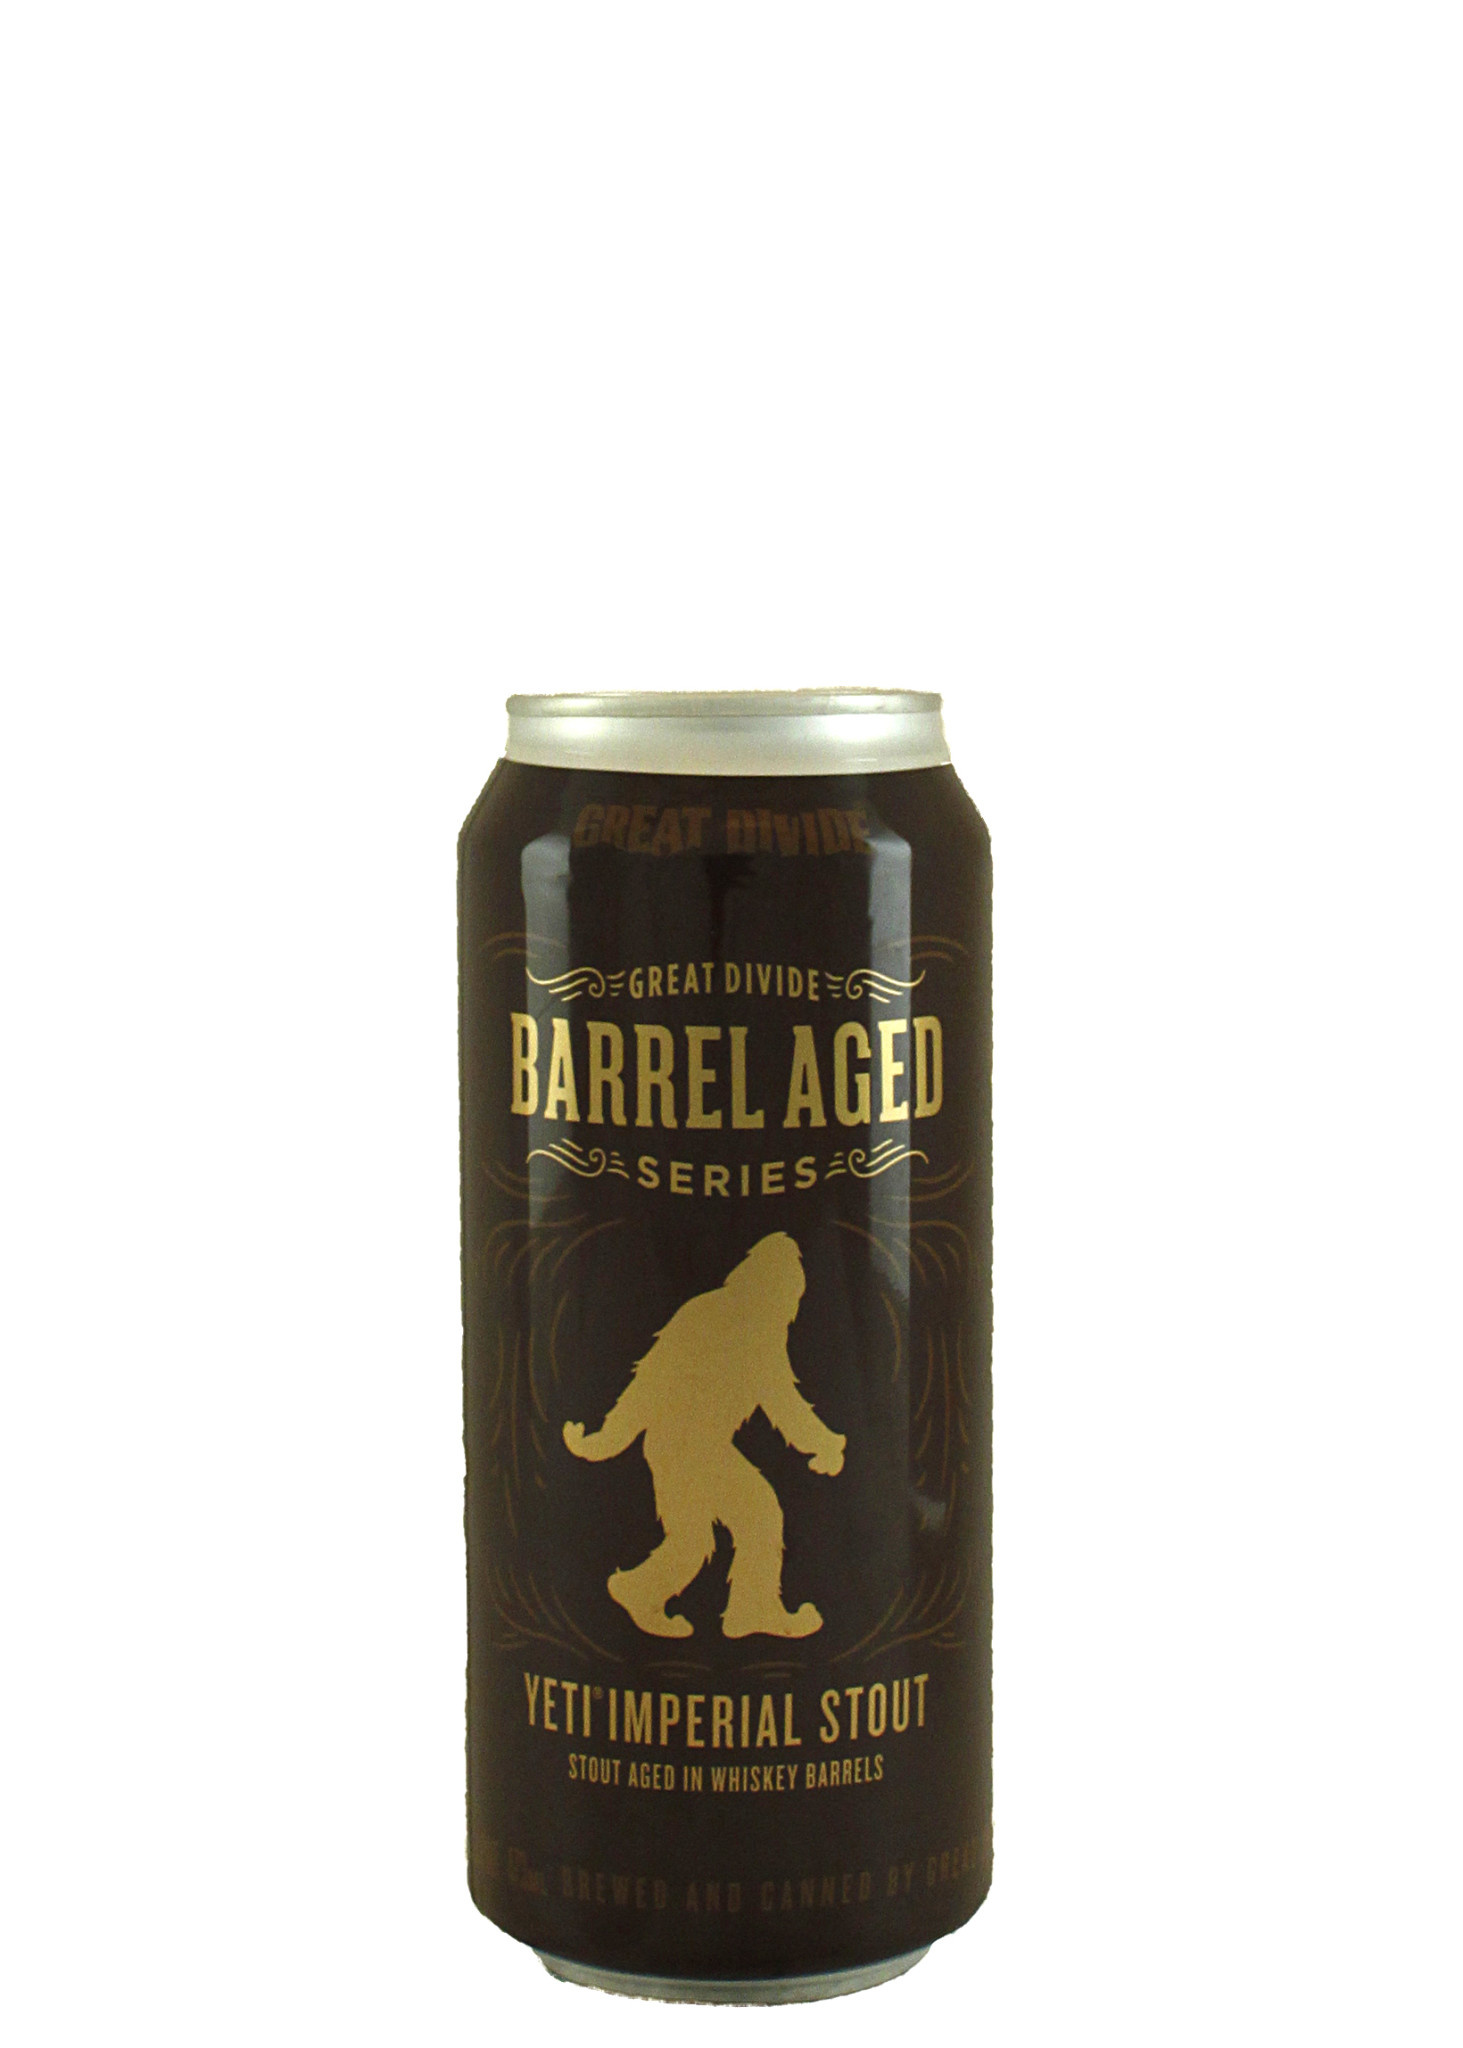 Great Divide Brewing Barrel Aged Series Yeti Imperial Stout 16oz. Can - Denver, CO